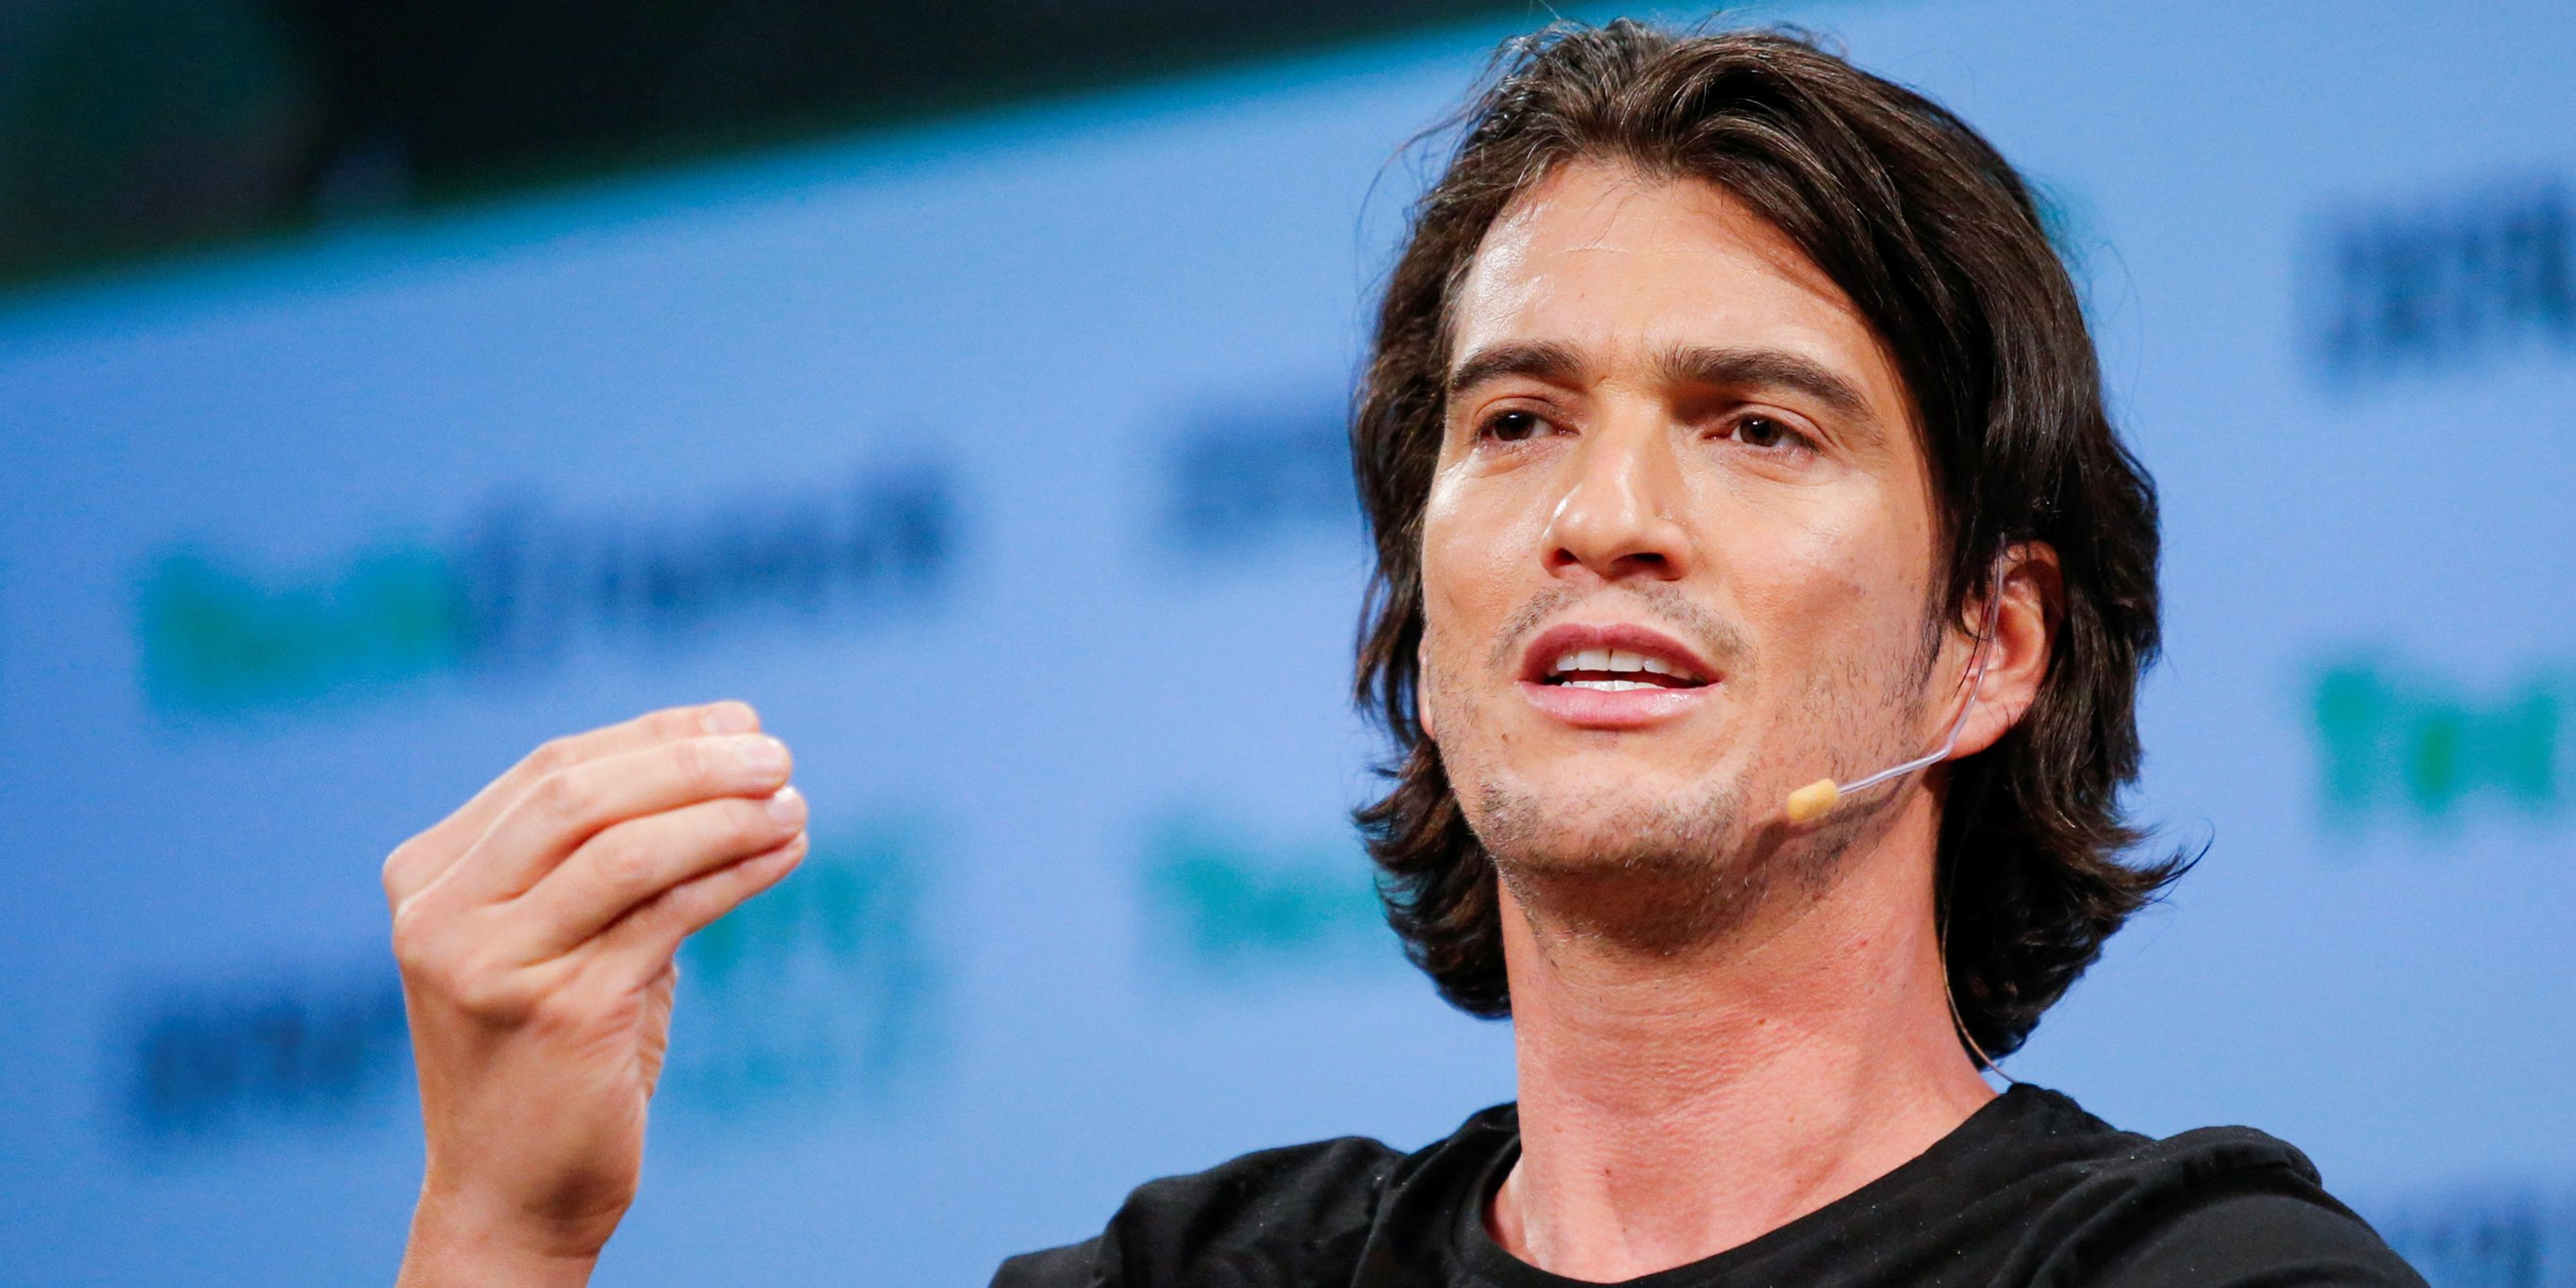 Google examined WeWork search results and reportedly found 'the most alarming negative sentiment trends' they've seen for such a company